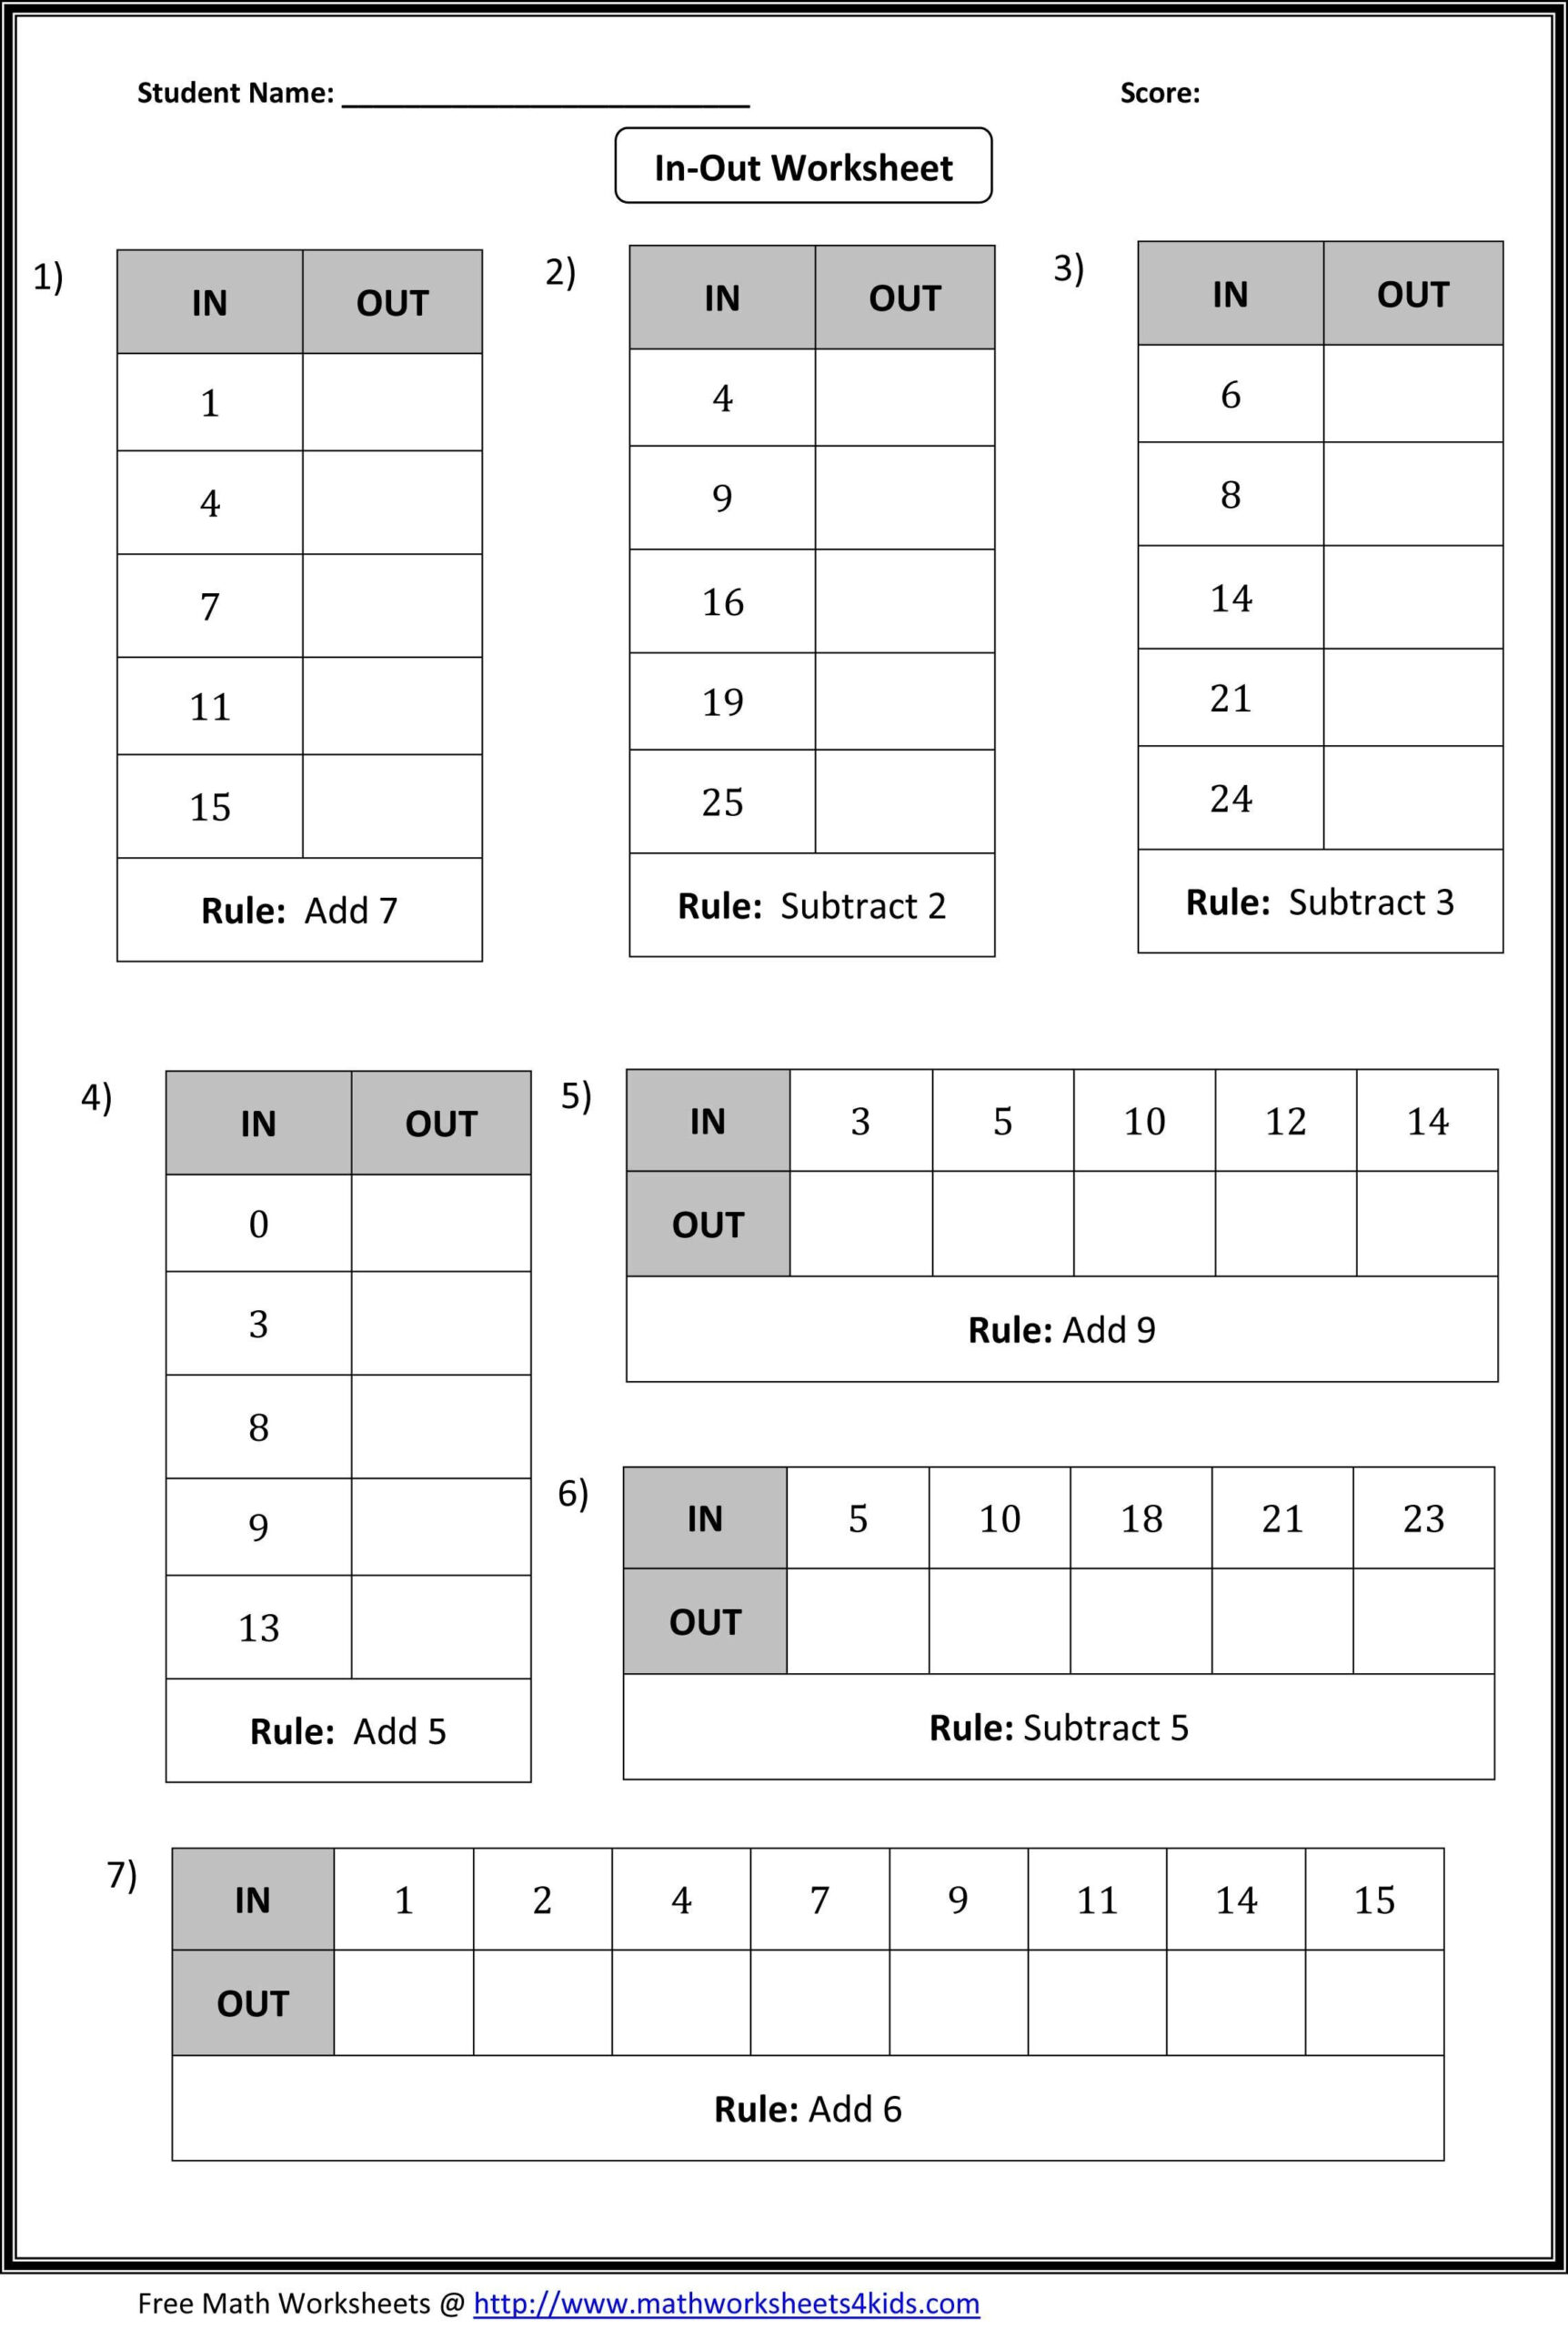 Function Table Worksheets Answers - A Function Table